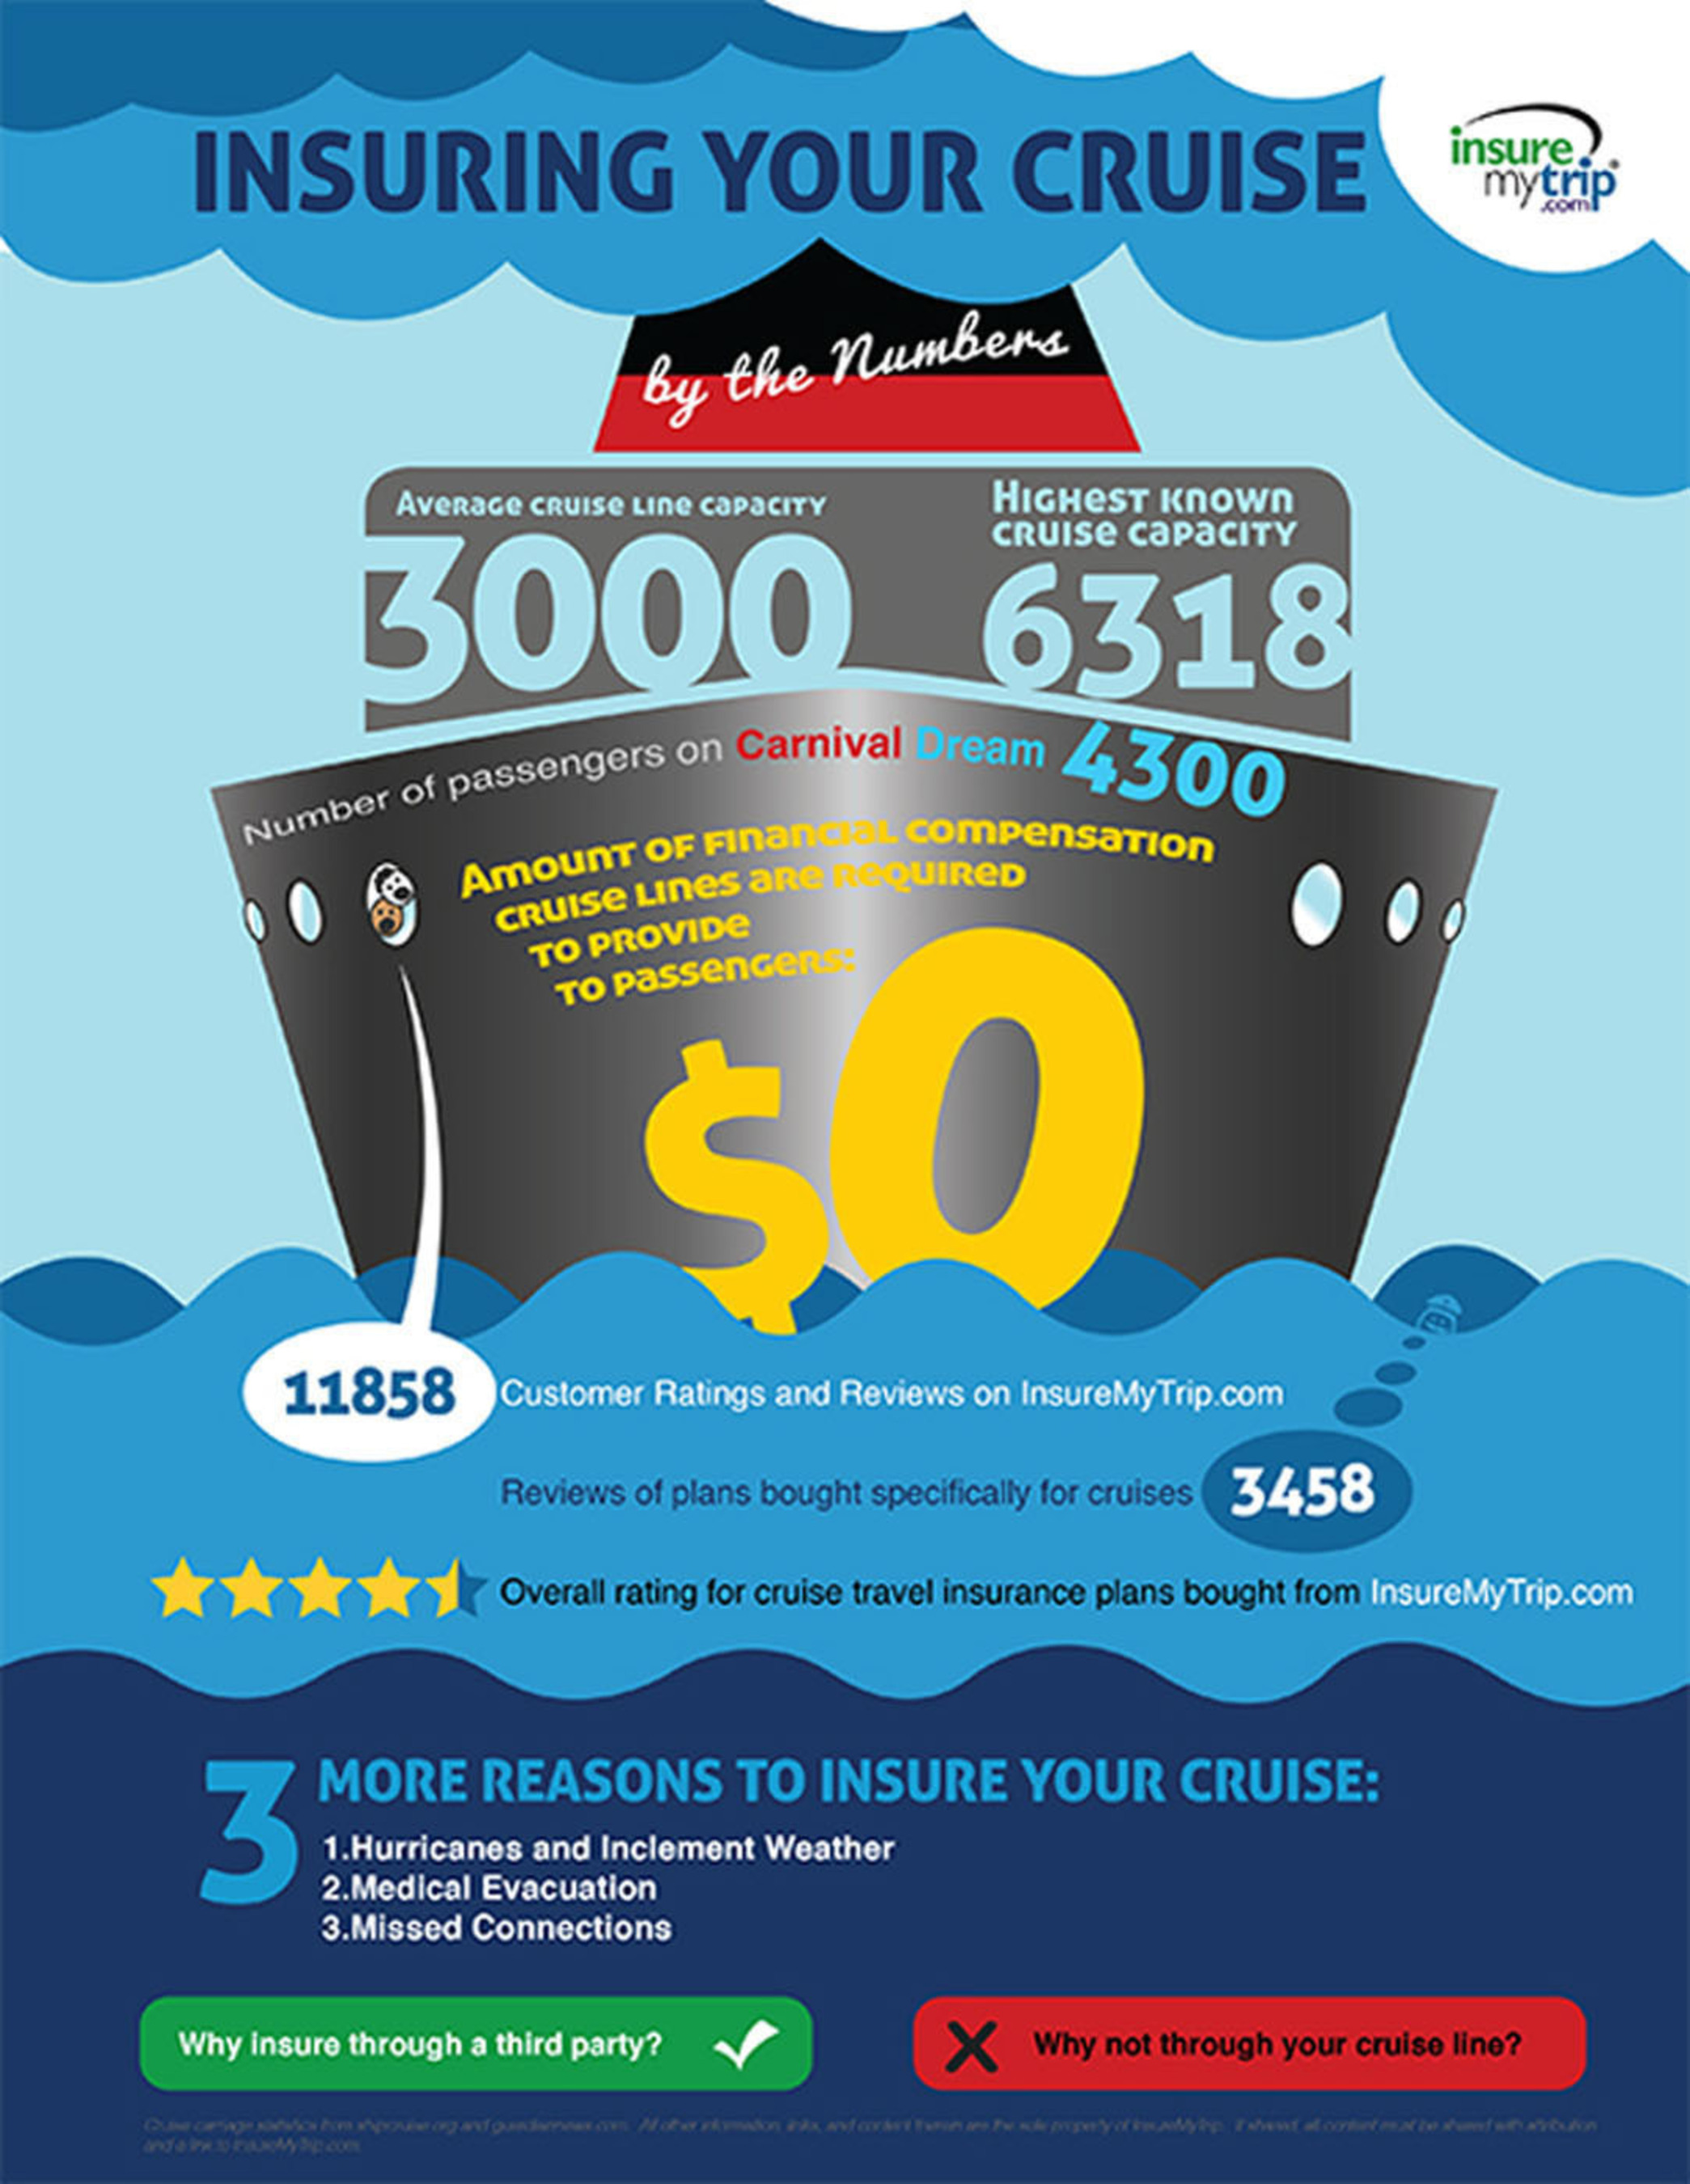 Insuring your cruise by the numbers: To help travelers understand exactly why insurance is important for a ...